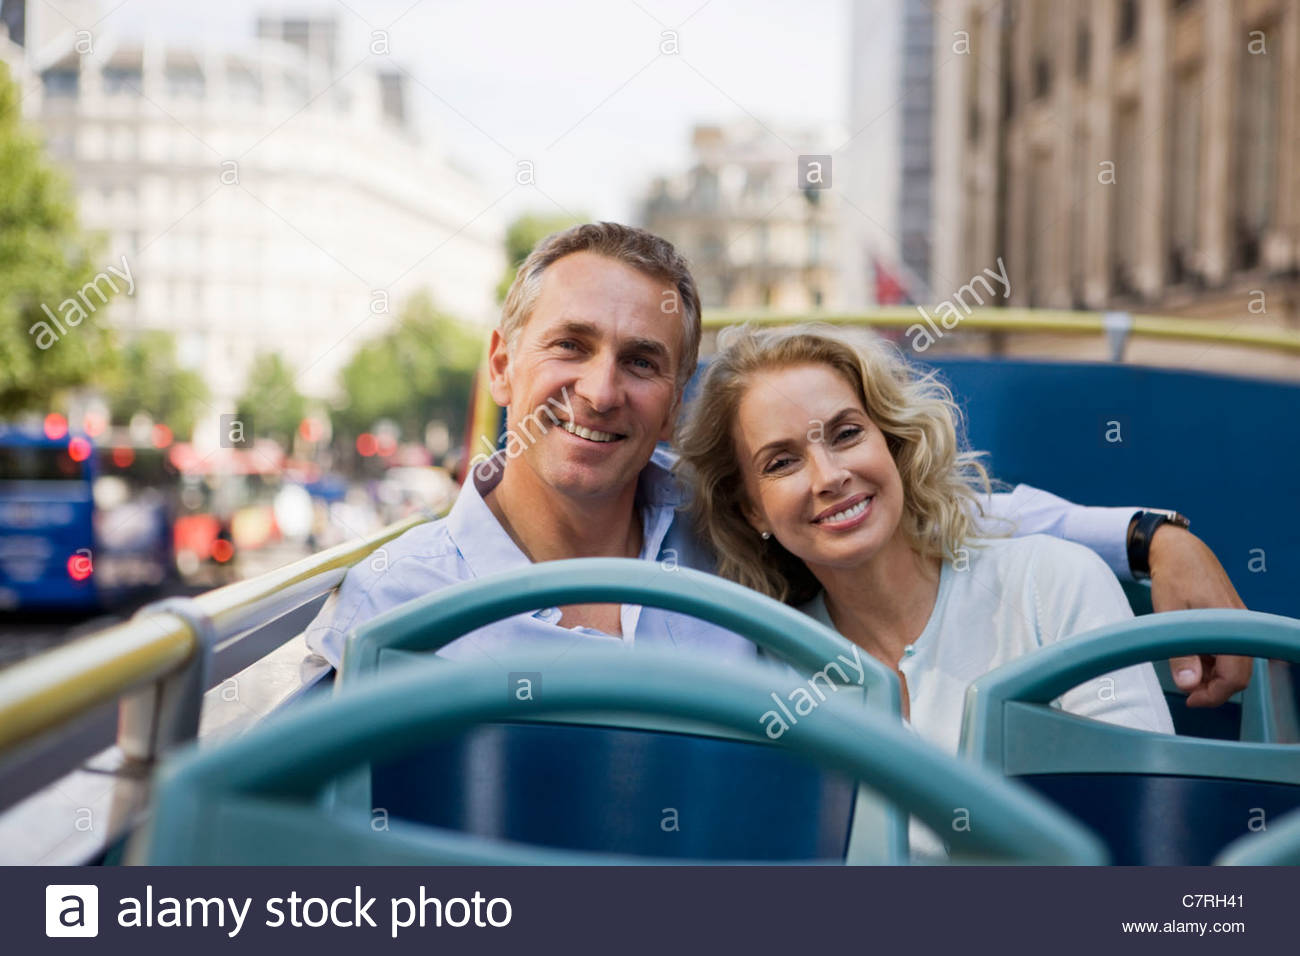 A middle-aged couple sitting on a sightseeing bus, embracing - Stock Image